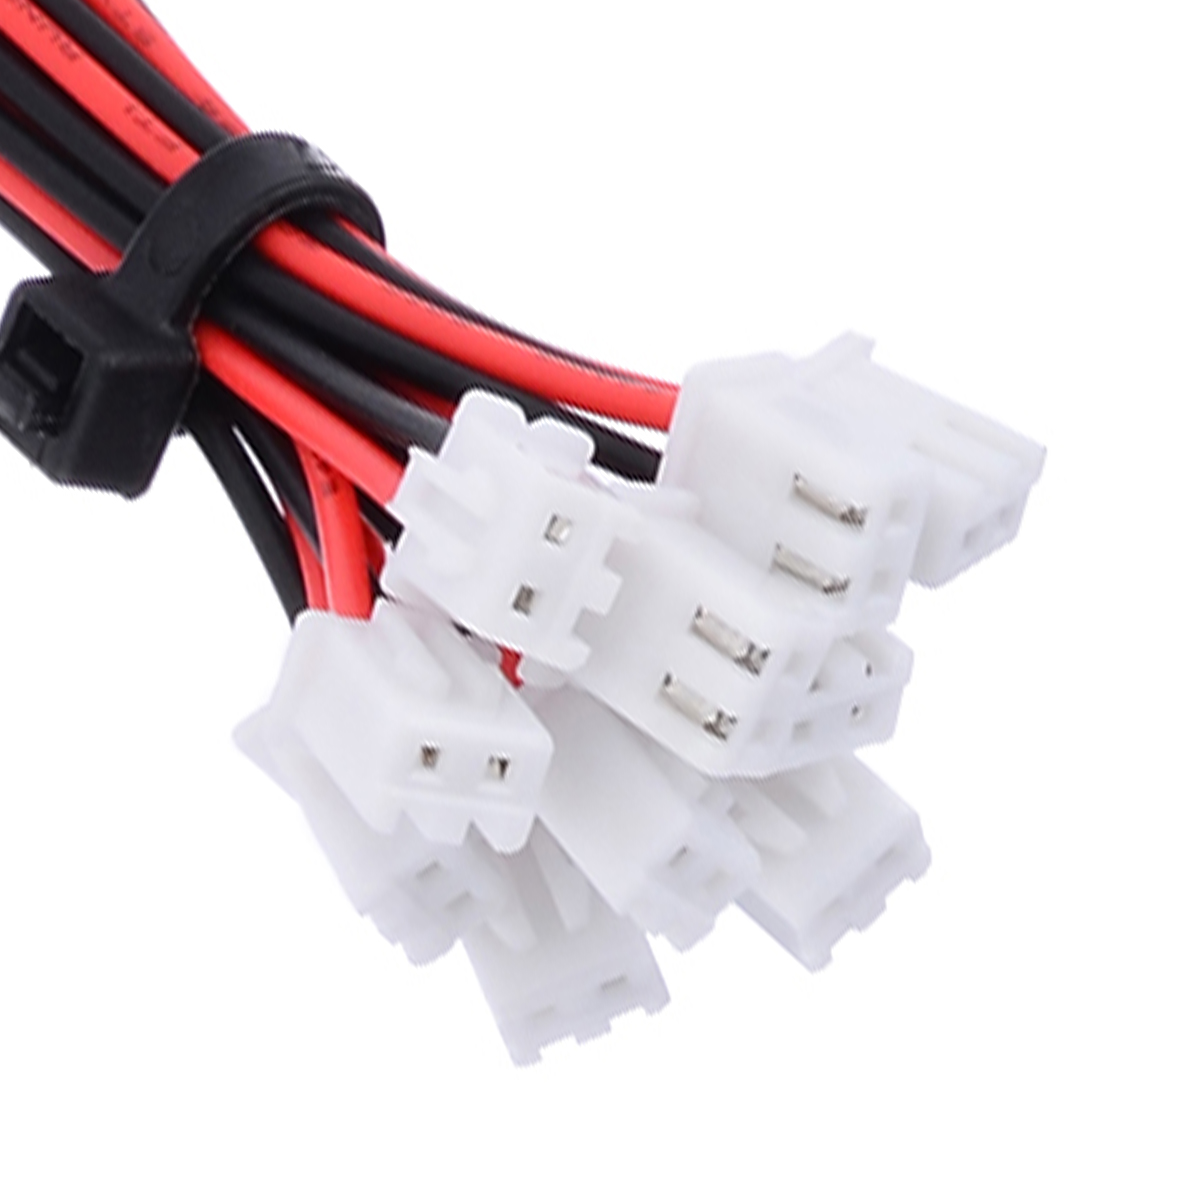 10 Sets 24AWG Mini Micro Connector With Wires JST XH 2.54mm 2 Pin Connector Plug With Wires 150mm Length image